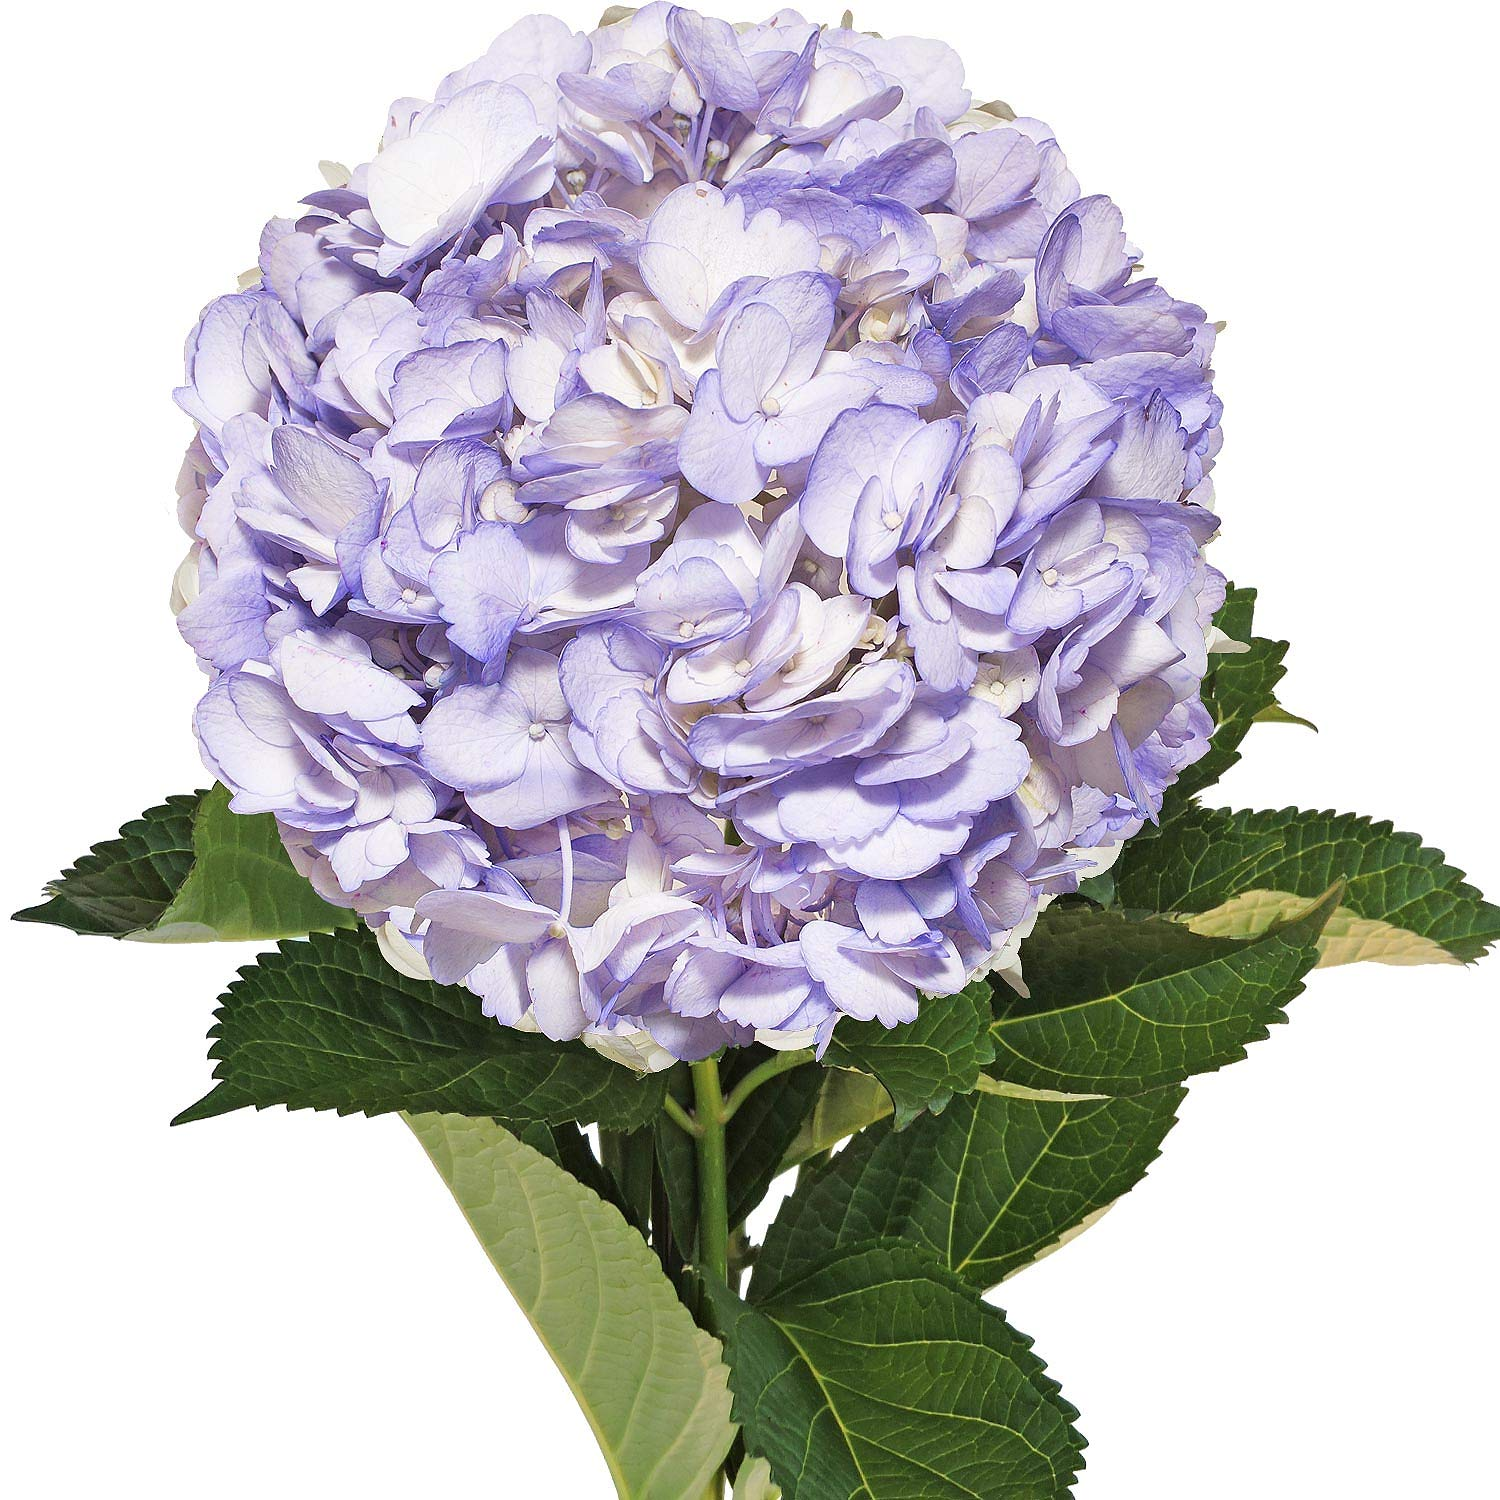 Farm Fresh Natural Painted Lavender Hydrangeas - Pack 15 by Bloomingmore (Image #1)